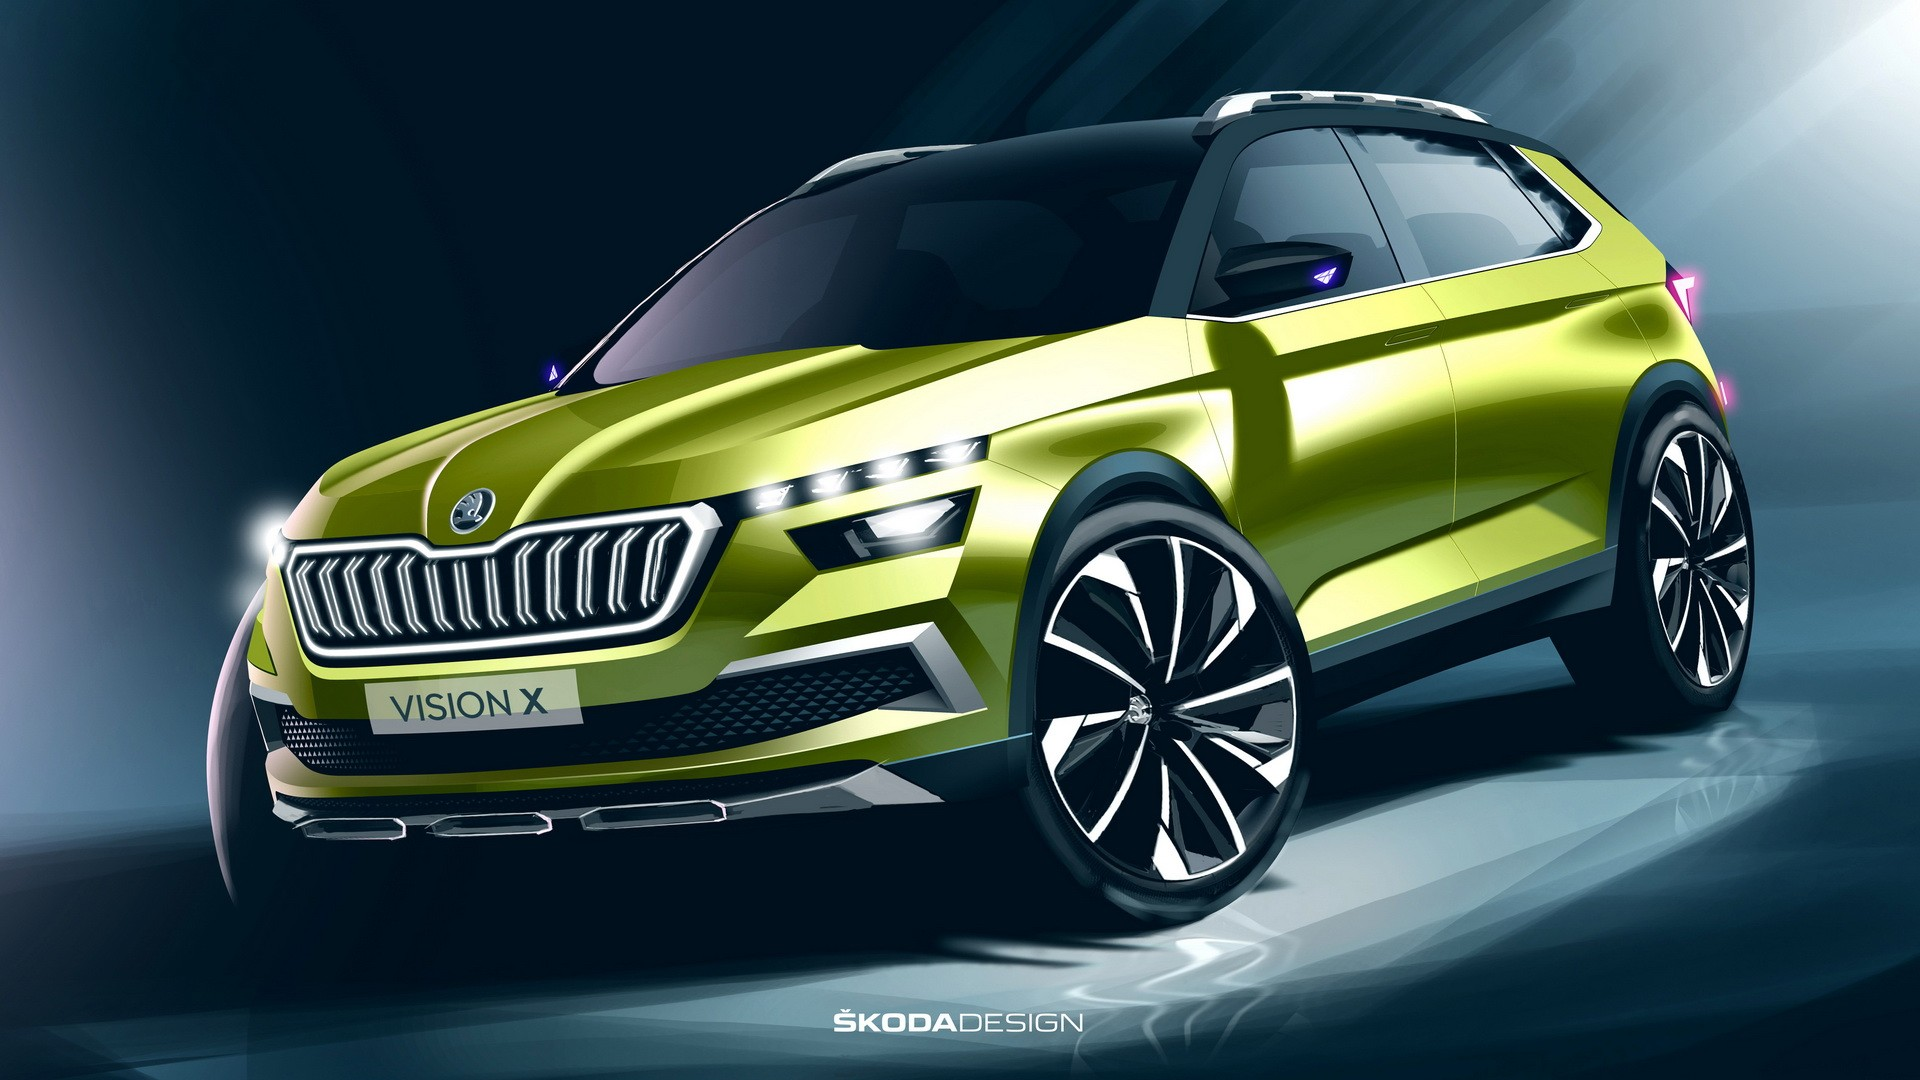 new skoda vision x small suv will debut at 2019 geneva motor show autoevolution. Black Bedroom Furniture Sets. Home Design Ideas